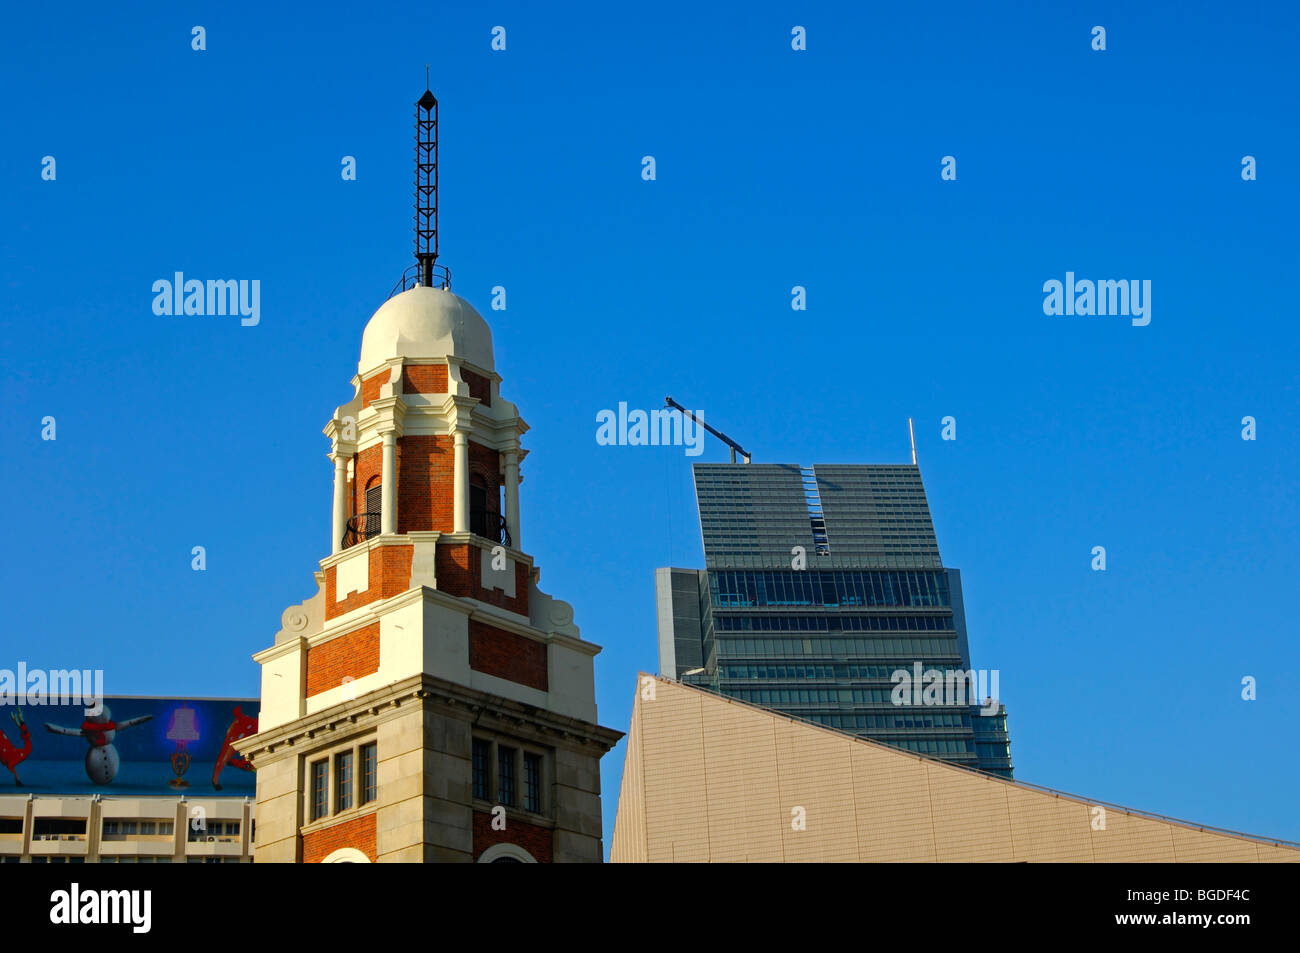 Spire of the old clock tower and a modern high-rise in the rear, Kowloon, Hong Kong, China, Asia - Stock Image